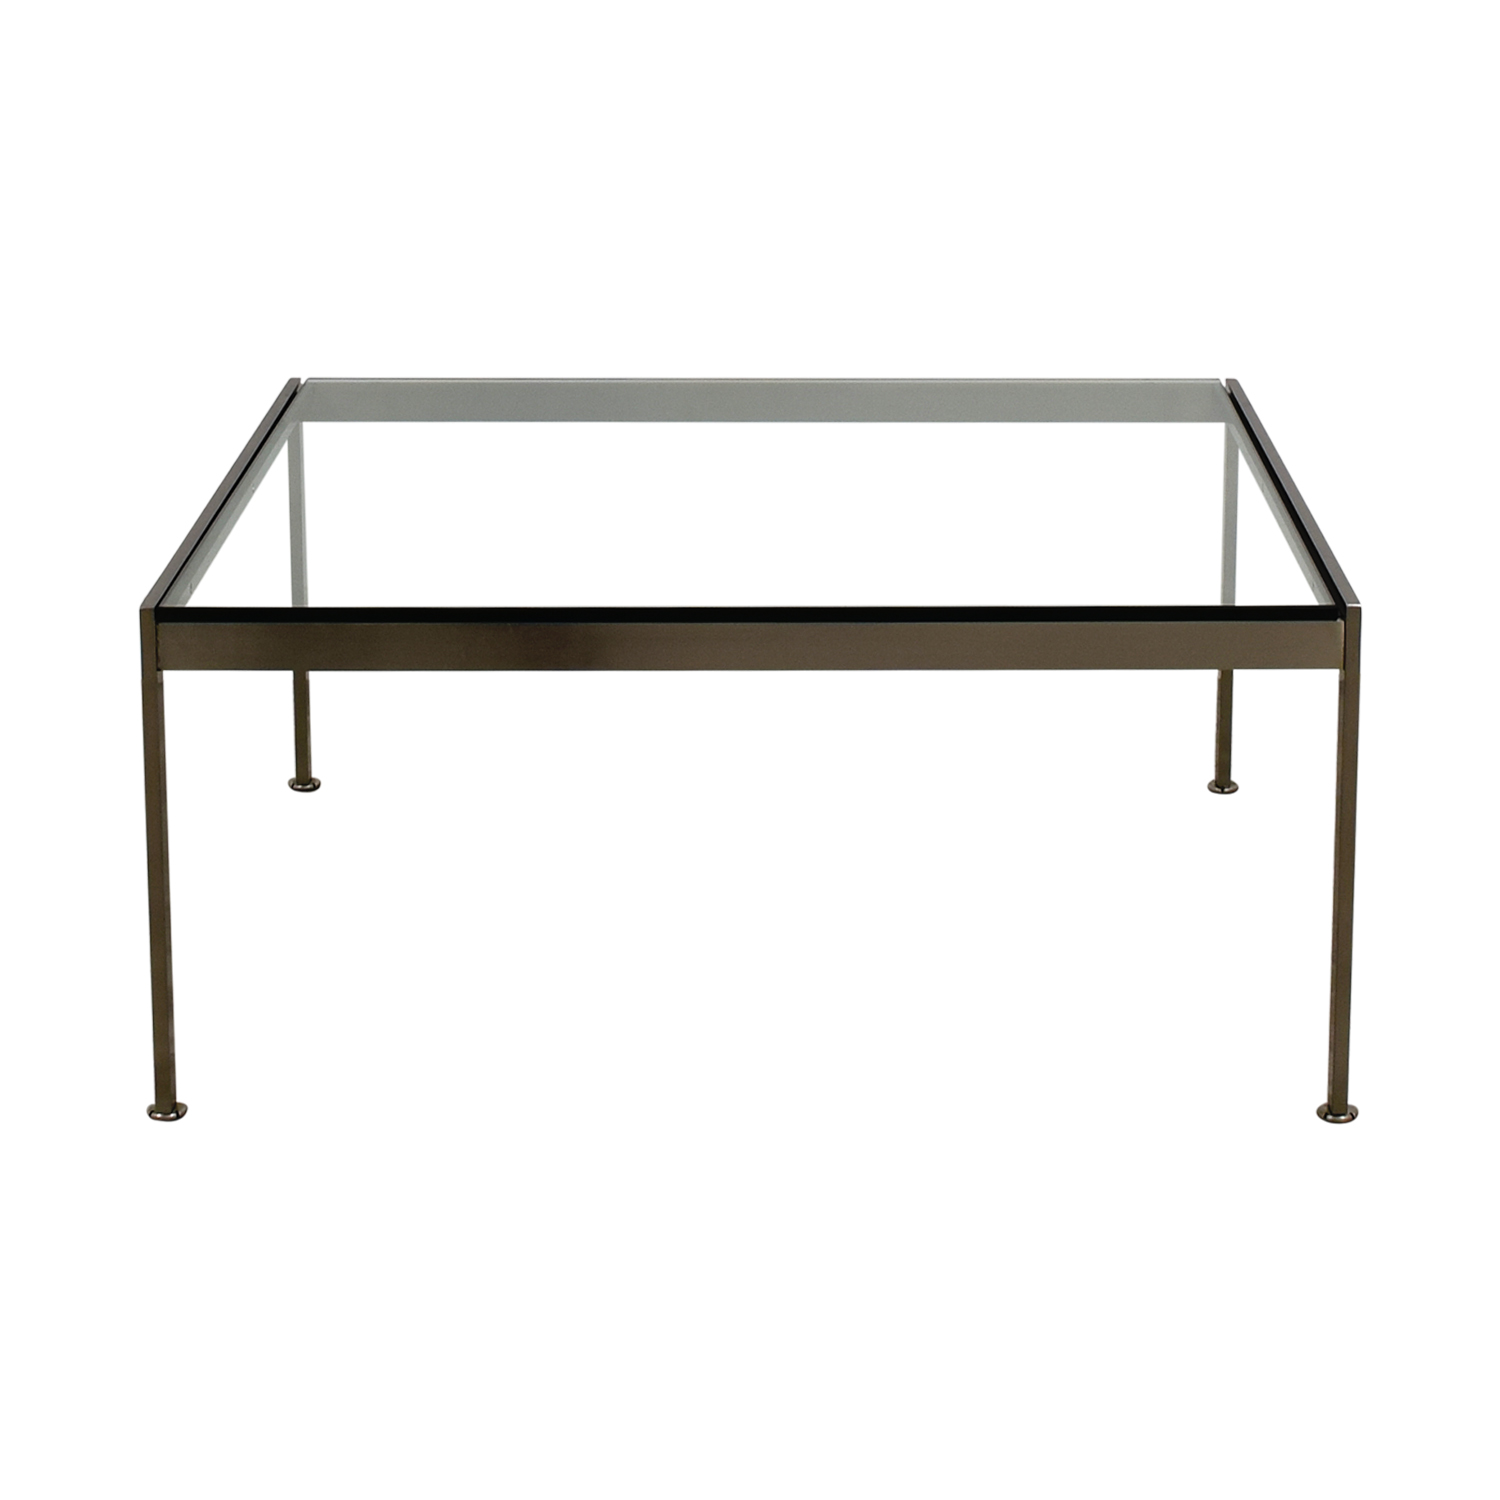 shop Geiger Geiger Metaland Glass Coffee Table online